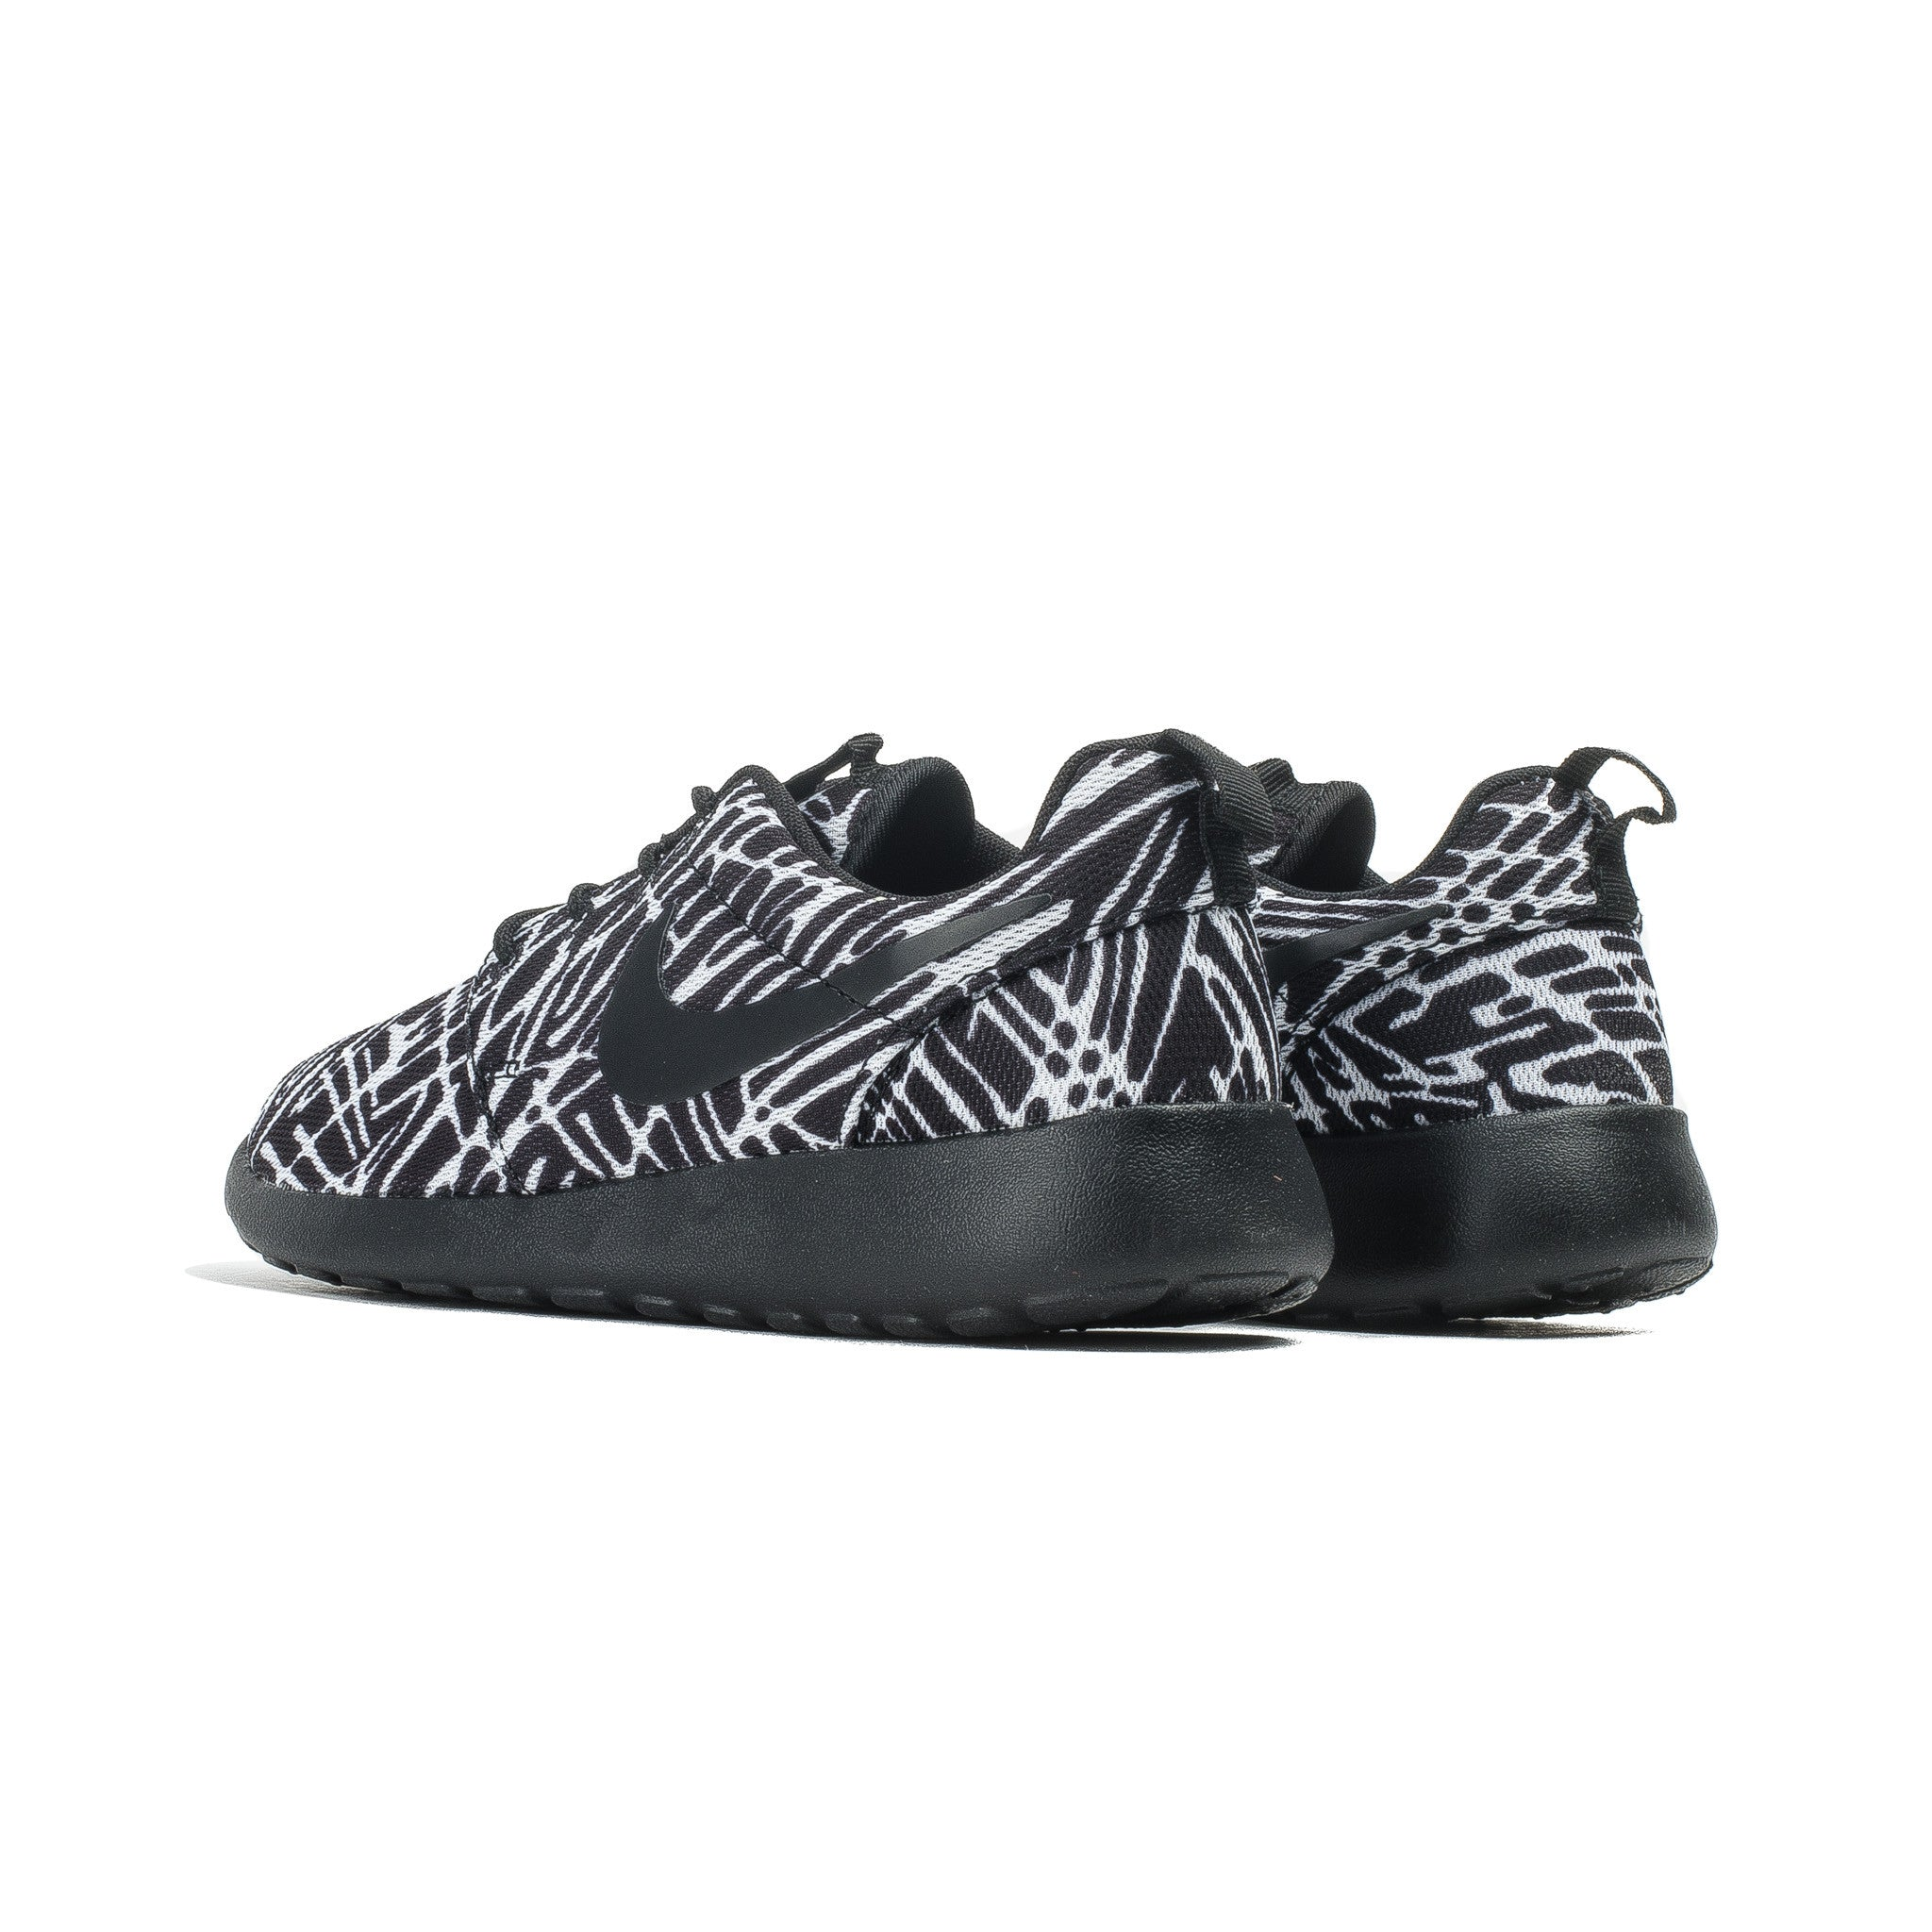 WMNS Roshe One Print 599432-009 Black